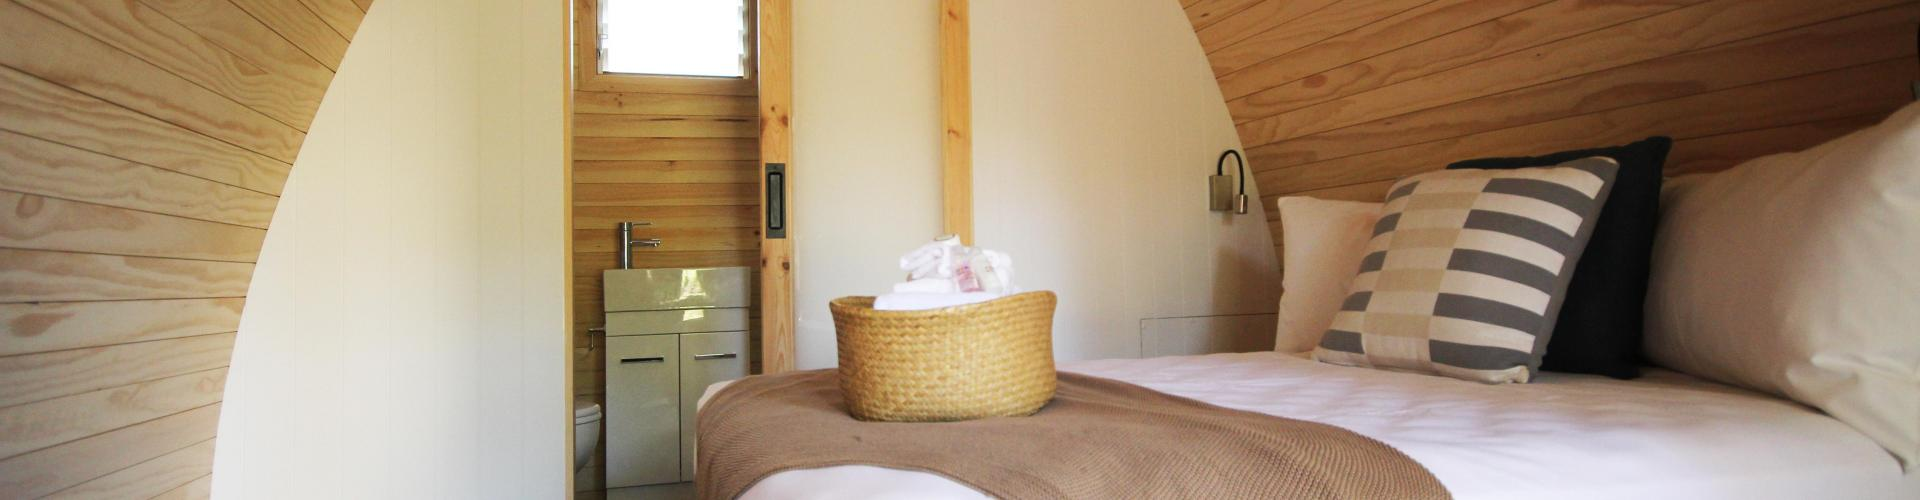 BIG4 Yarra Valley Park Lane Holiday Park - Glamping - Pod with Ensuite -